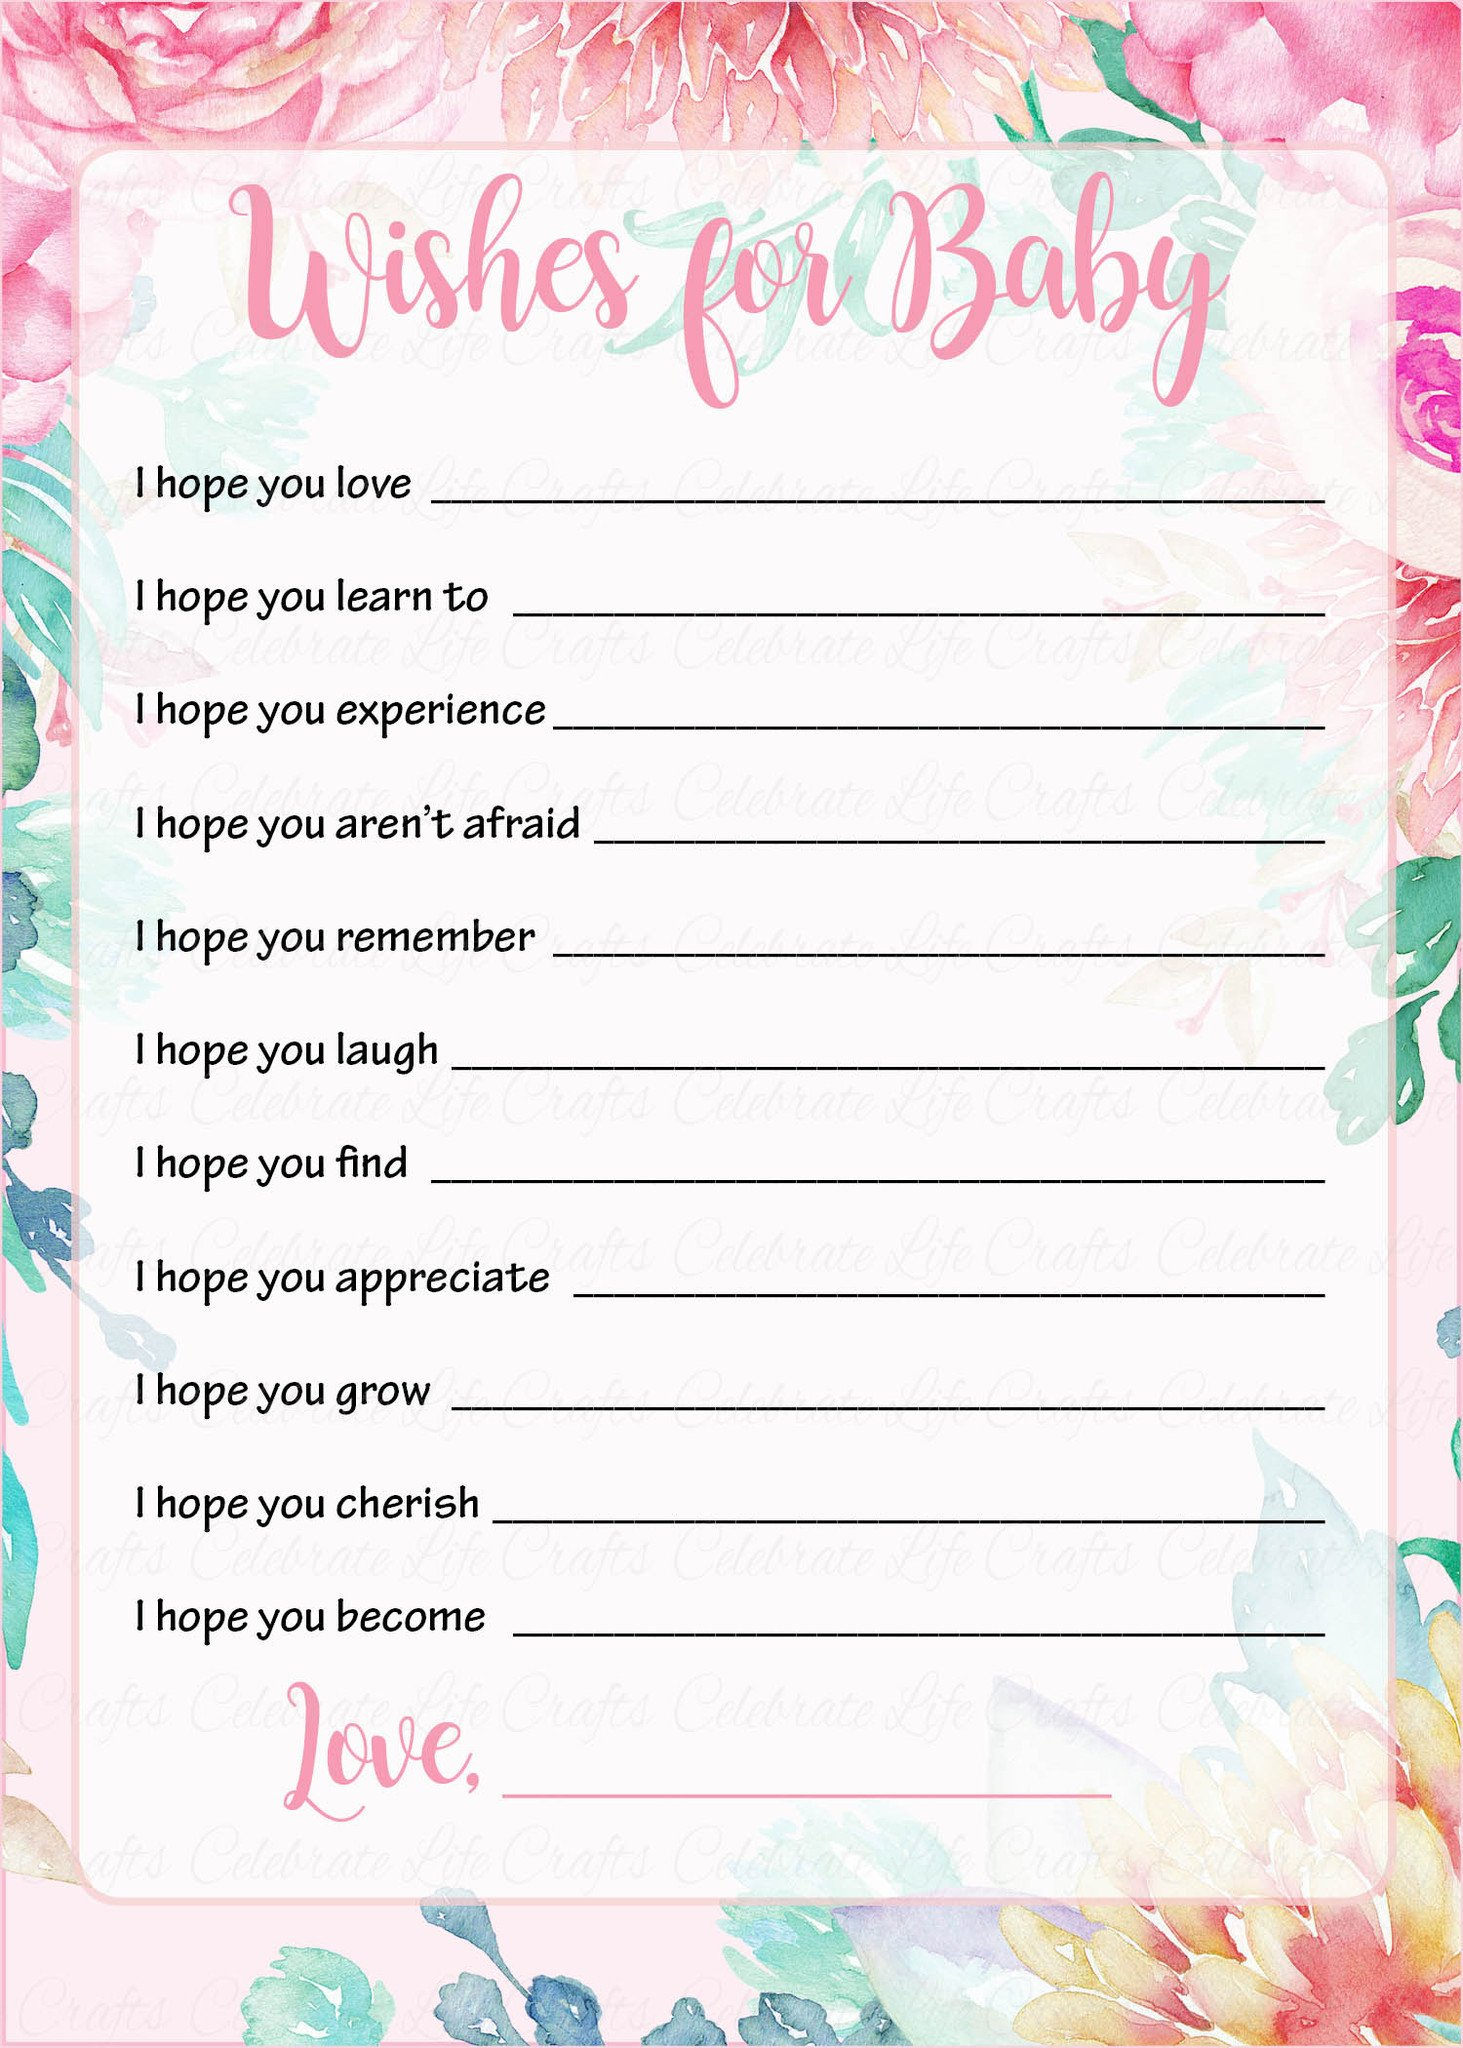 Full Size of Baby Shower:stylish Baby Shower Wishes Picture Inspirations Image Of Wishes For Baby Cards For Baby Shower Amazoncom Baby Shower Best Baby Shower Wish Cards Products On Wanelo